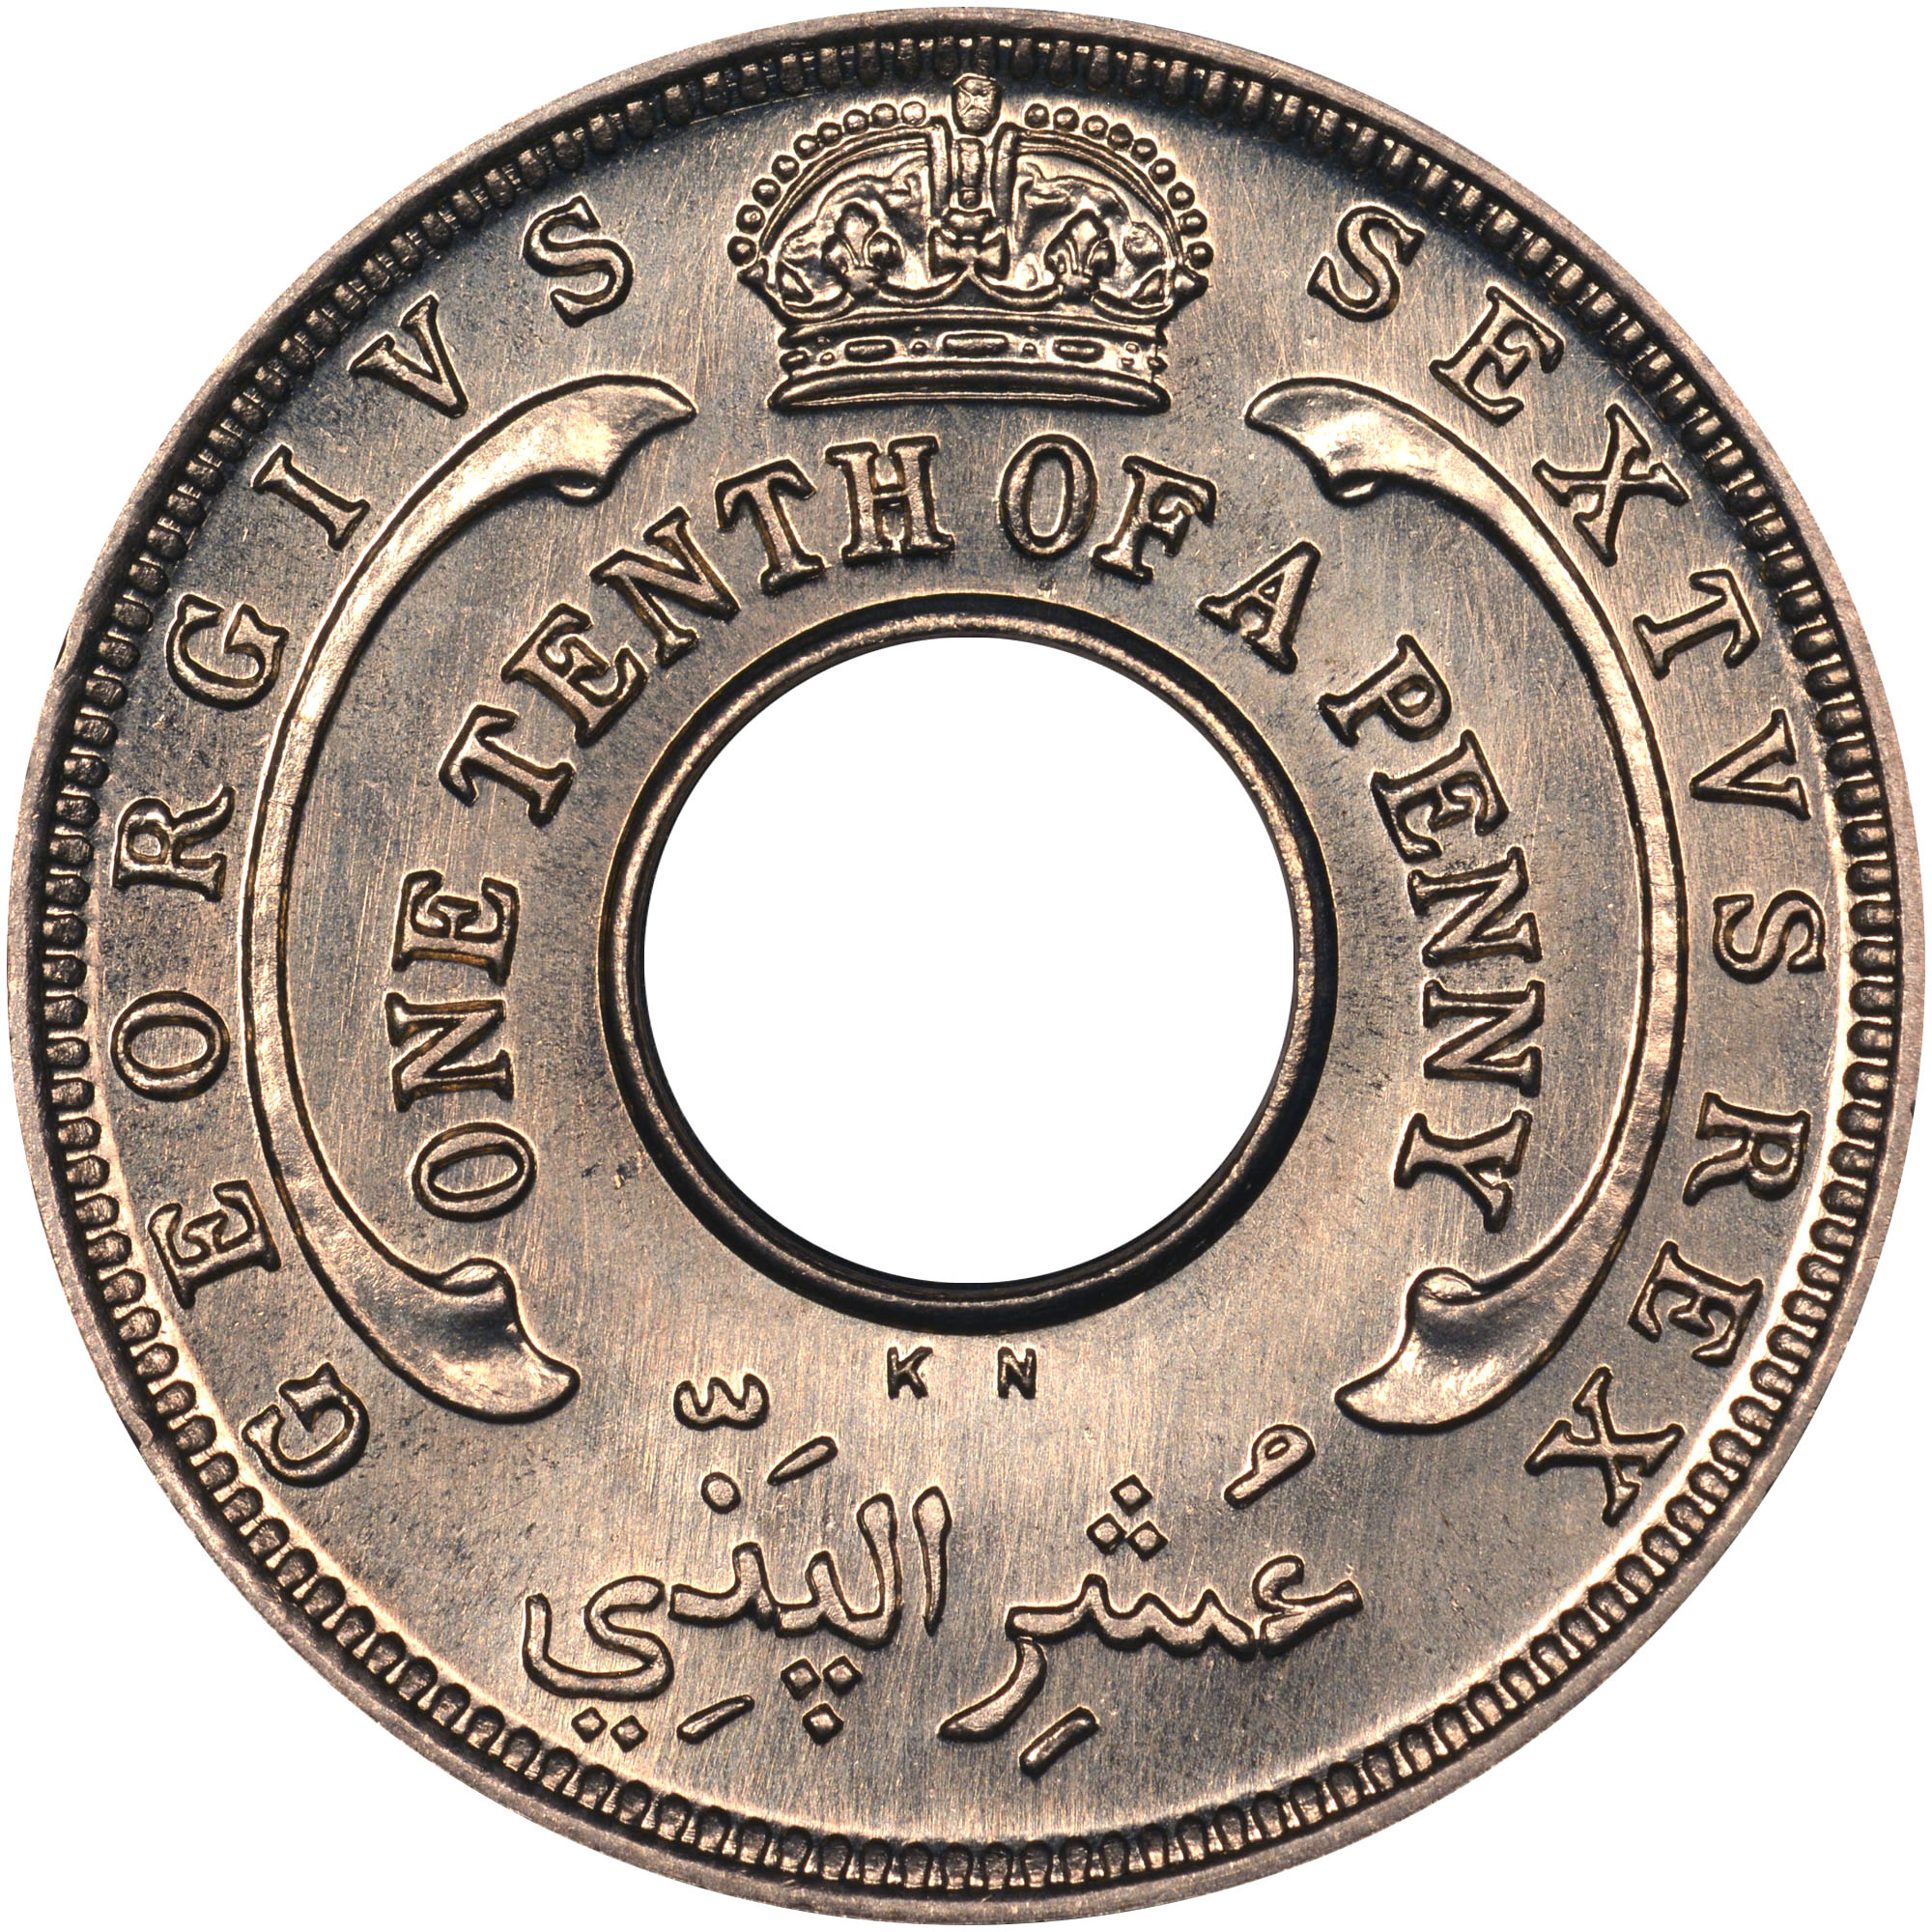 1949-1950 British West Africa 1/10 Penny obverse